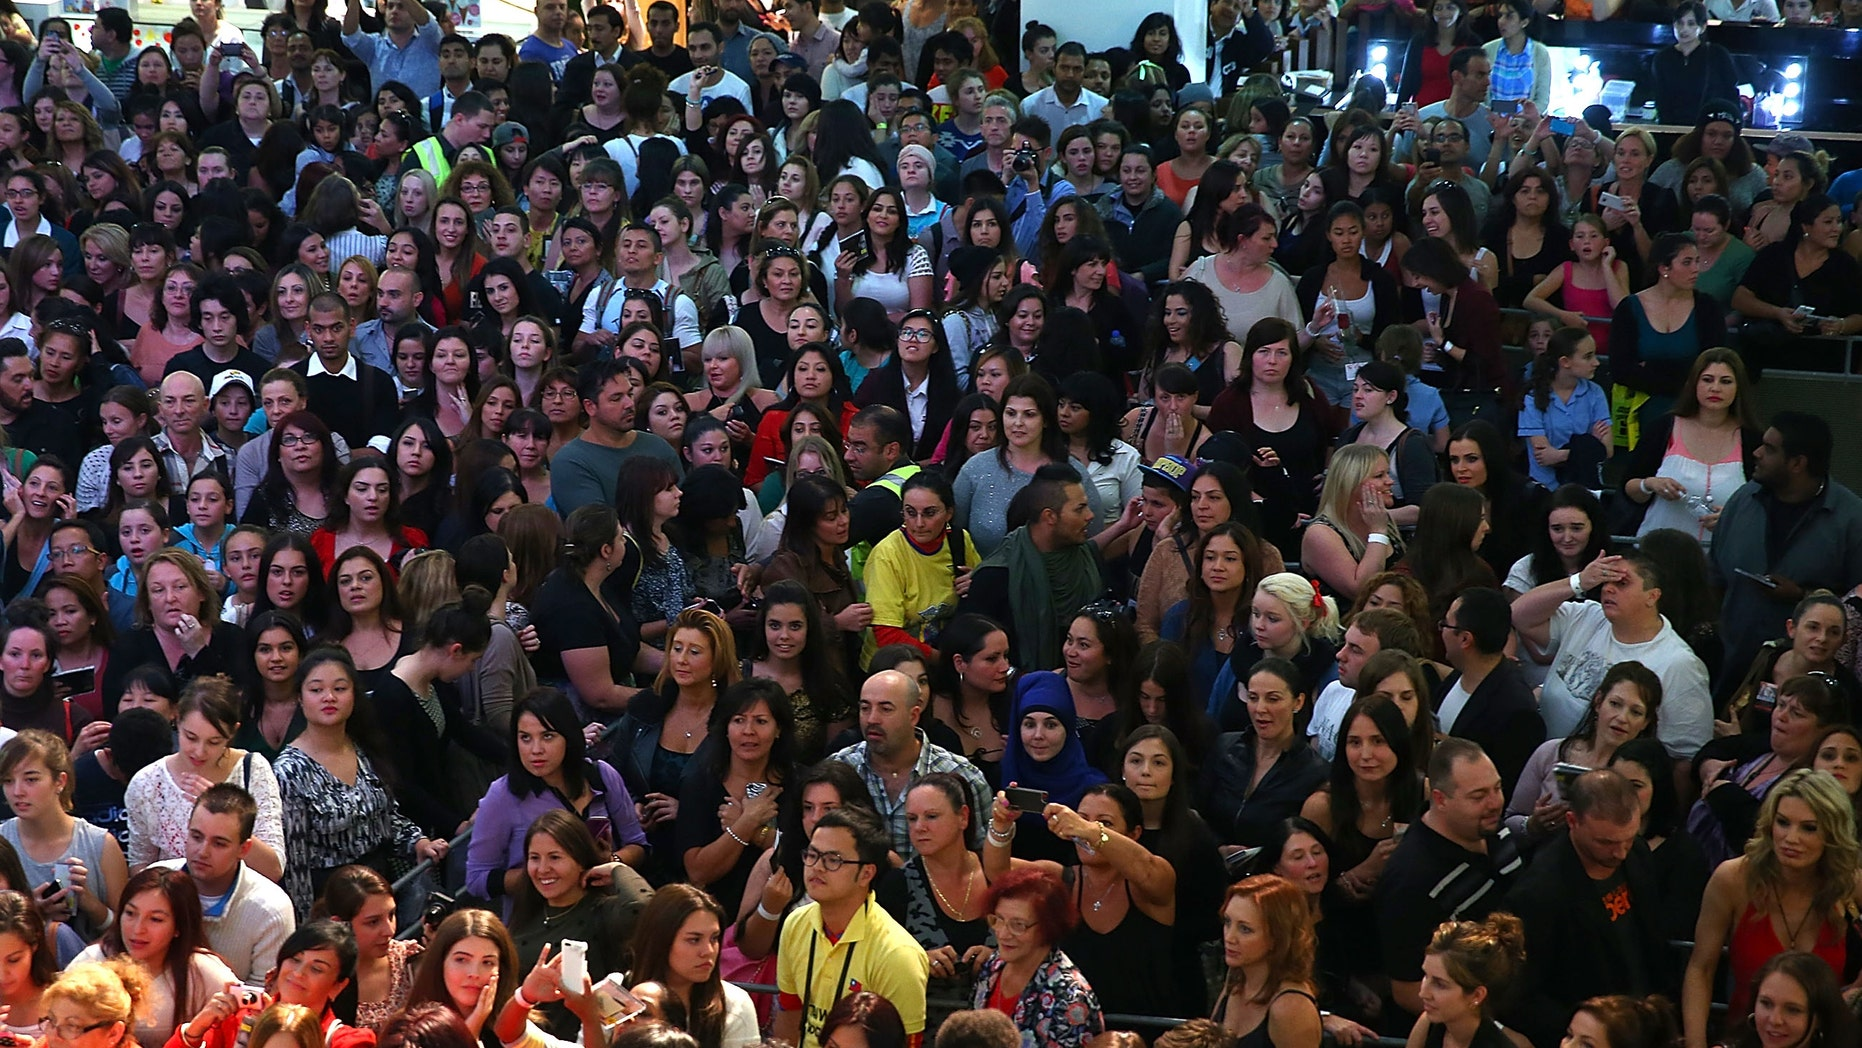 SYDNEY, AUSTRALIA - MAY 09:  Crowds cheer as they wait for an autograph signing with Ricky Martin during a promotion for his Greatest hits release at Westfield Paramatta on May 9, 2013 in Sydney, Australia.  (Photo by Marianna Massey/Getty Images)